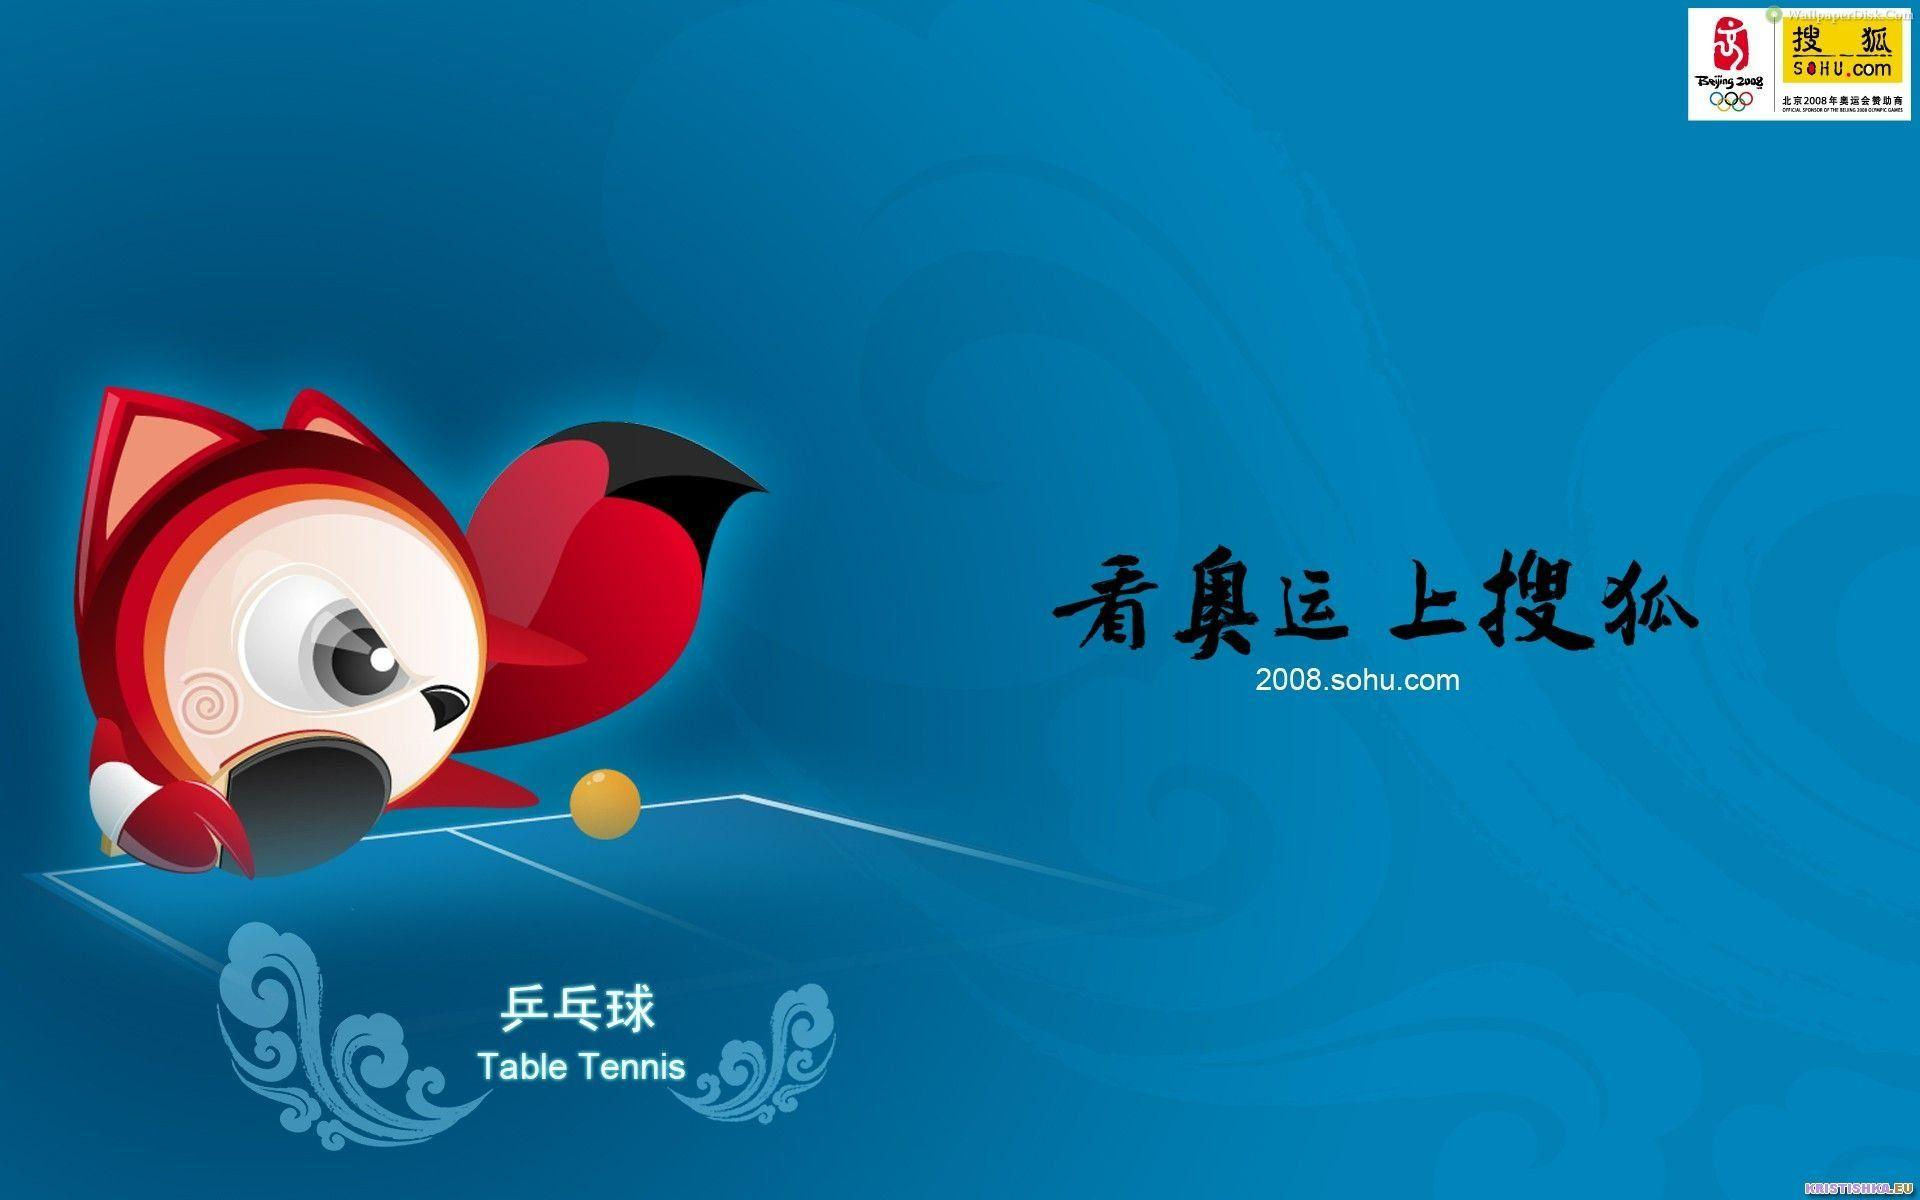 Table Tennis Wallpapers - Wallpaper Cave